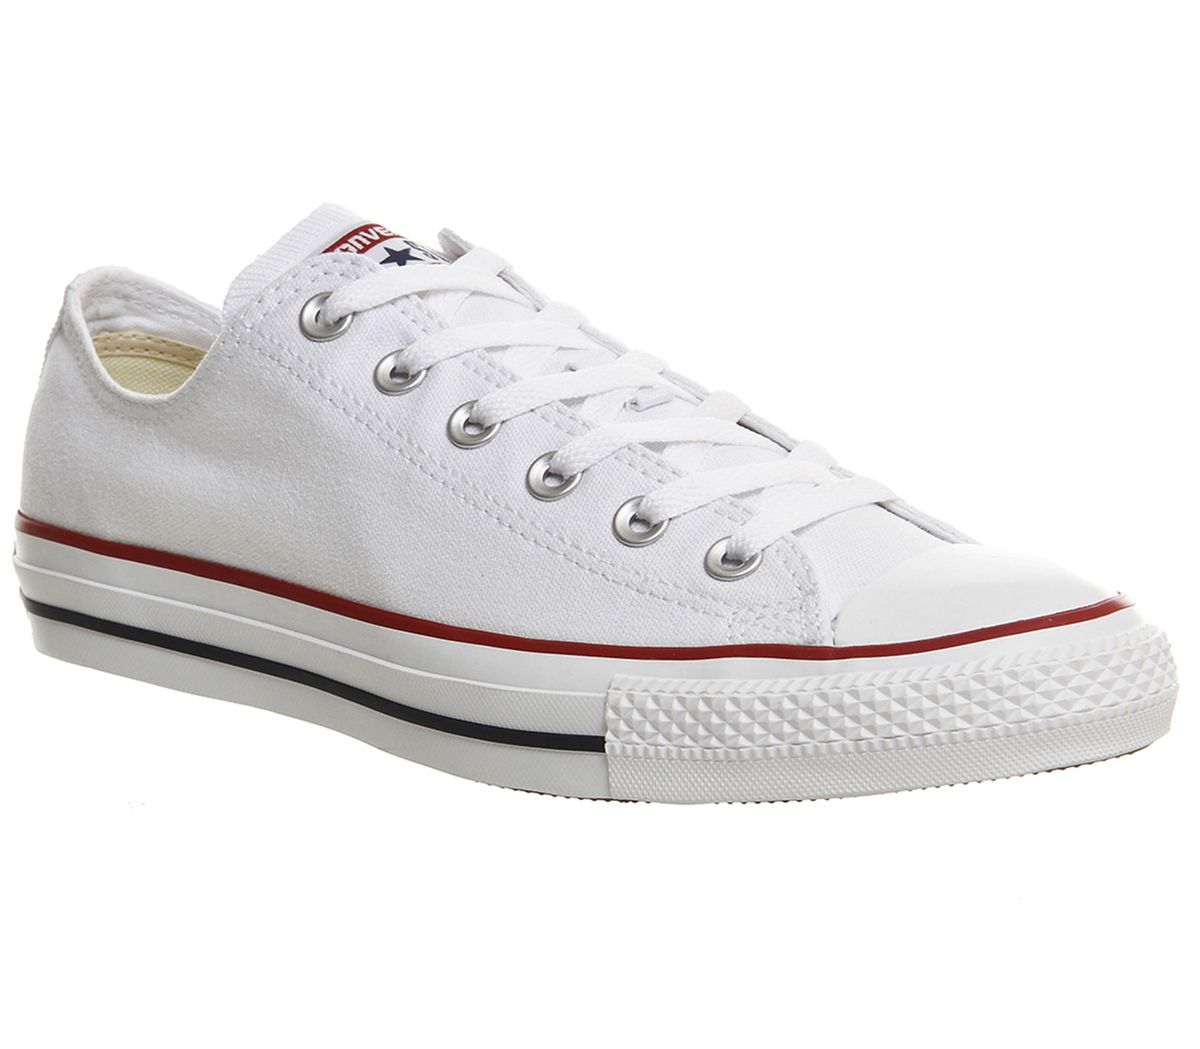 f01487b6d776 Converse All Star Low White Canvas - Unisex Sports